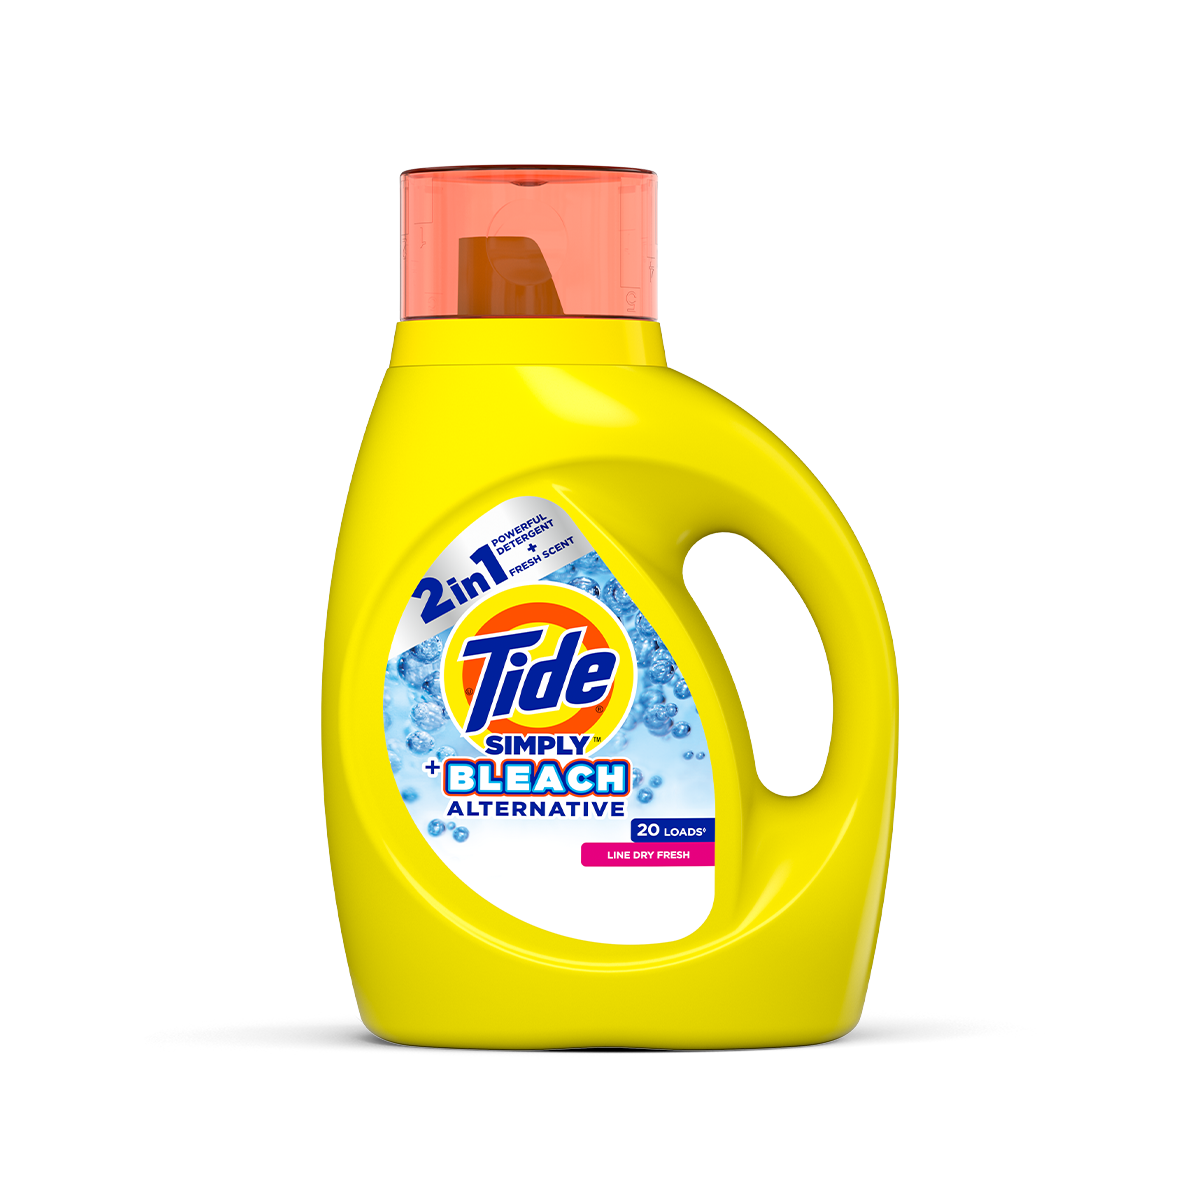 Tide Simply Plus Bleach Alternative Liquid Laundry Detergent